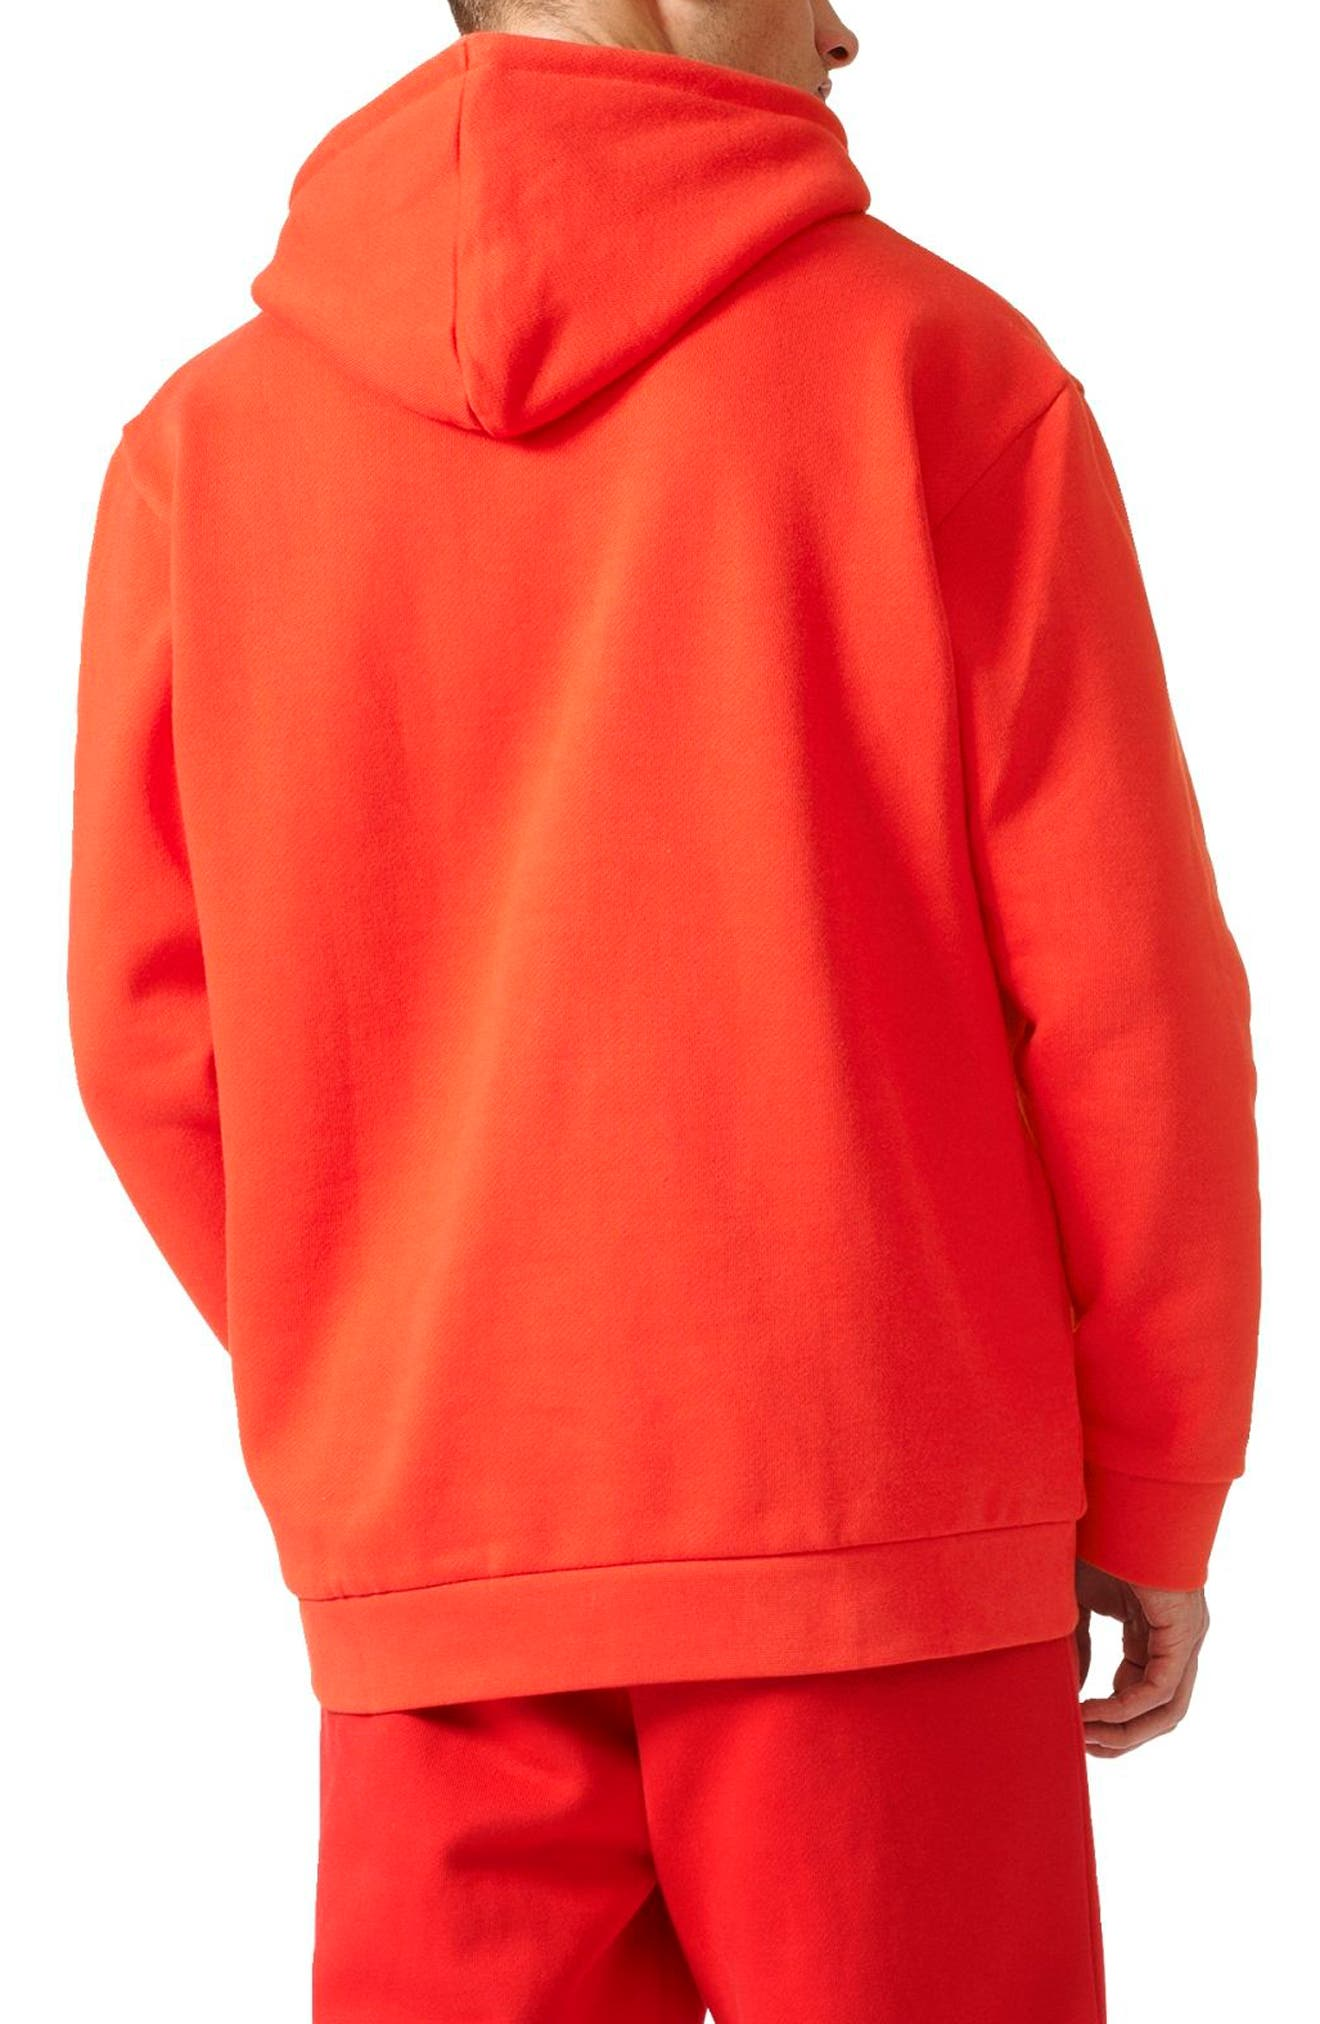 Originals Anichkov Hoodie,                             Alternate thumbnail 2, color,                             600